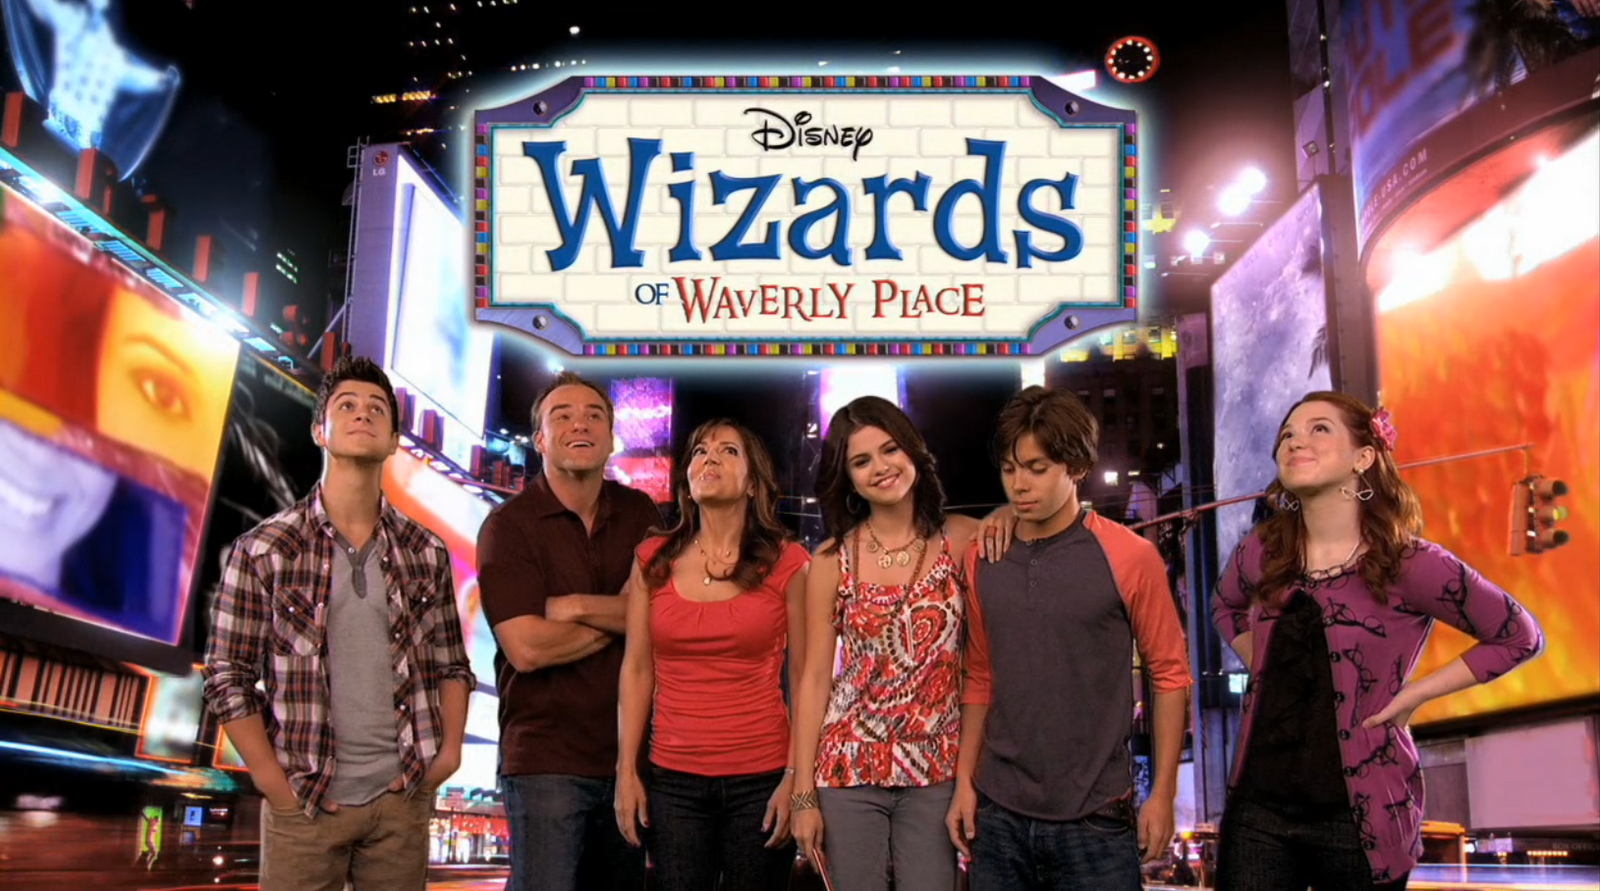 Pin By Babett Badics On Hatterek In 2020 Wizards Of Waverly Place Wizards Of Waverly Disney Channel Shows